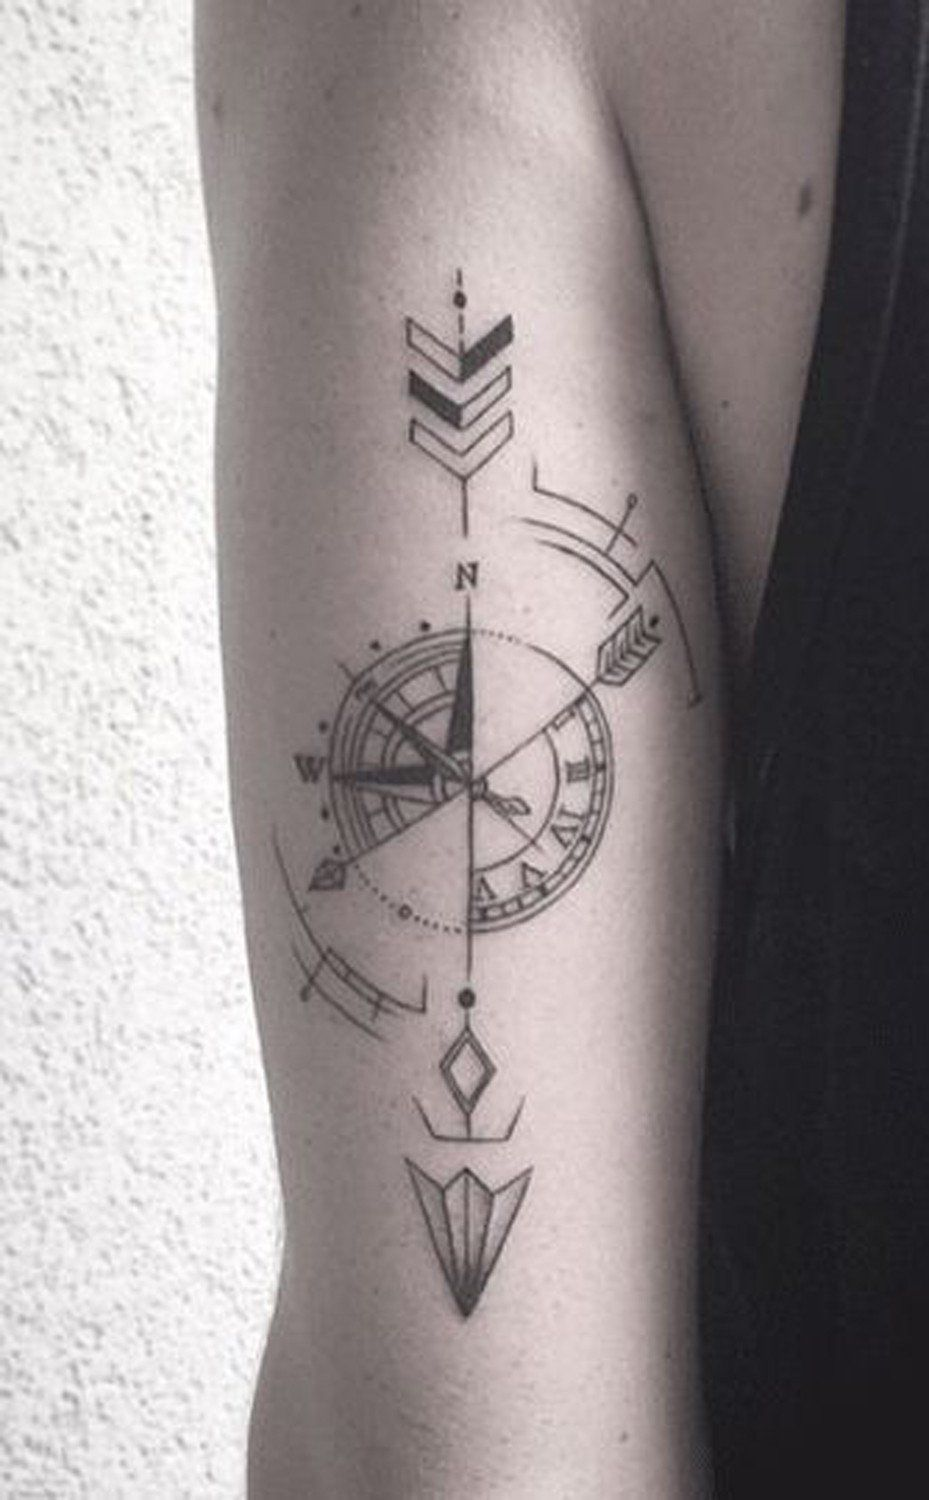 Compass Arrow Back Of Arm Forearm Tattoo Ideas At Mybodiart Com